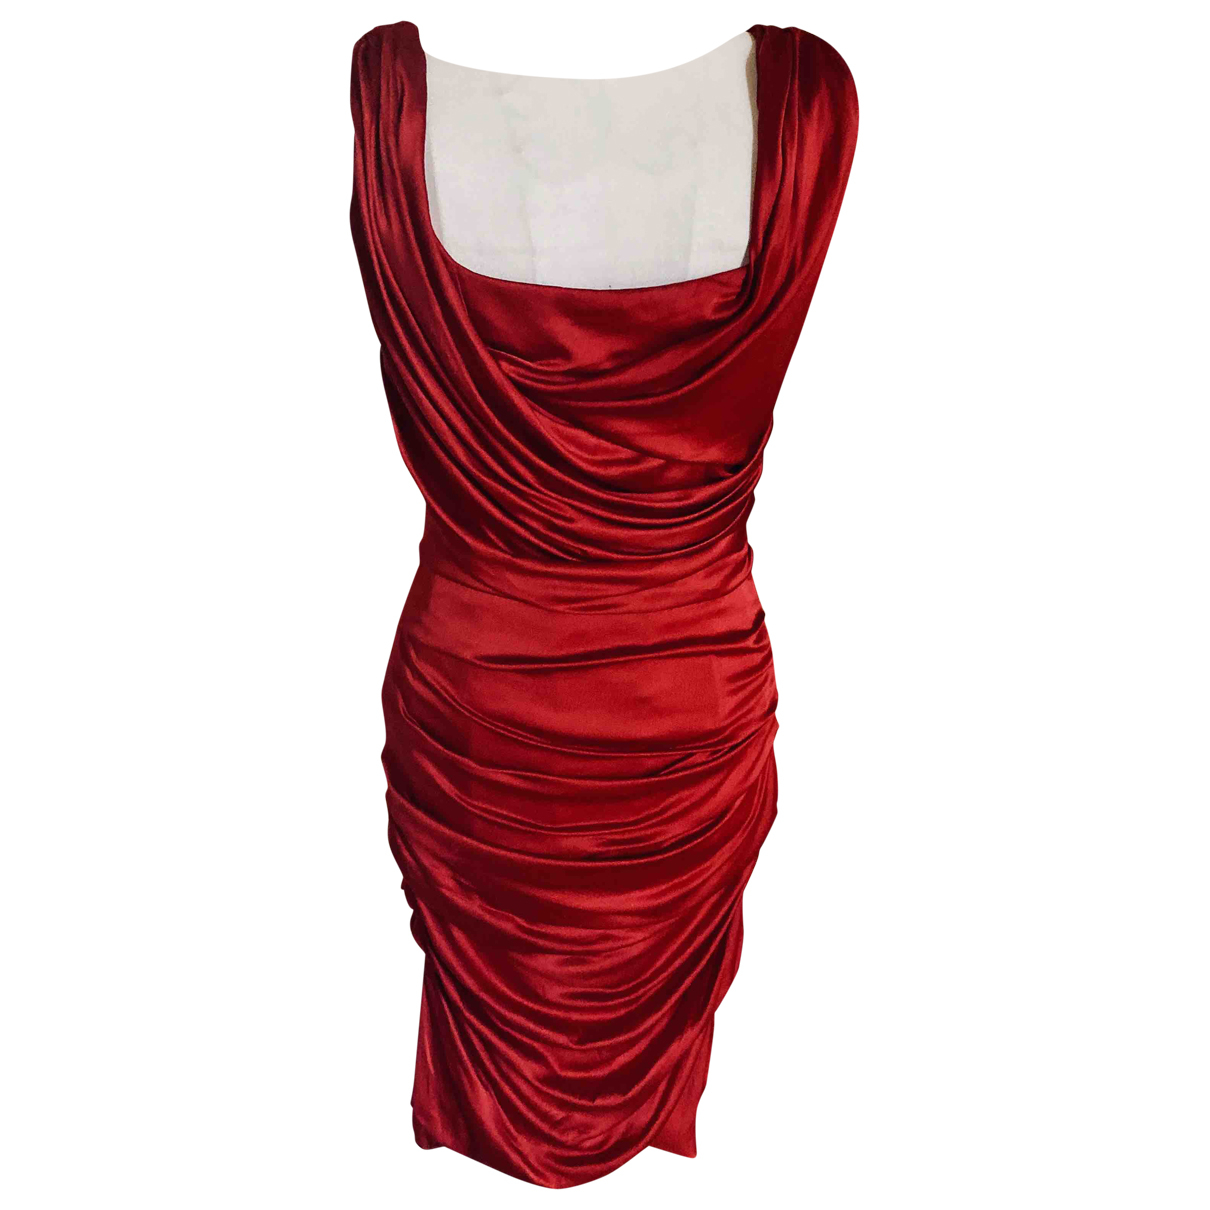 Dolce & Gabbana \N Red Silk dress for Women 40 IT